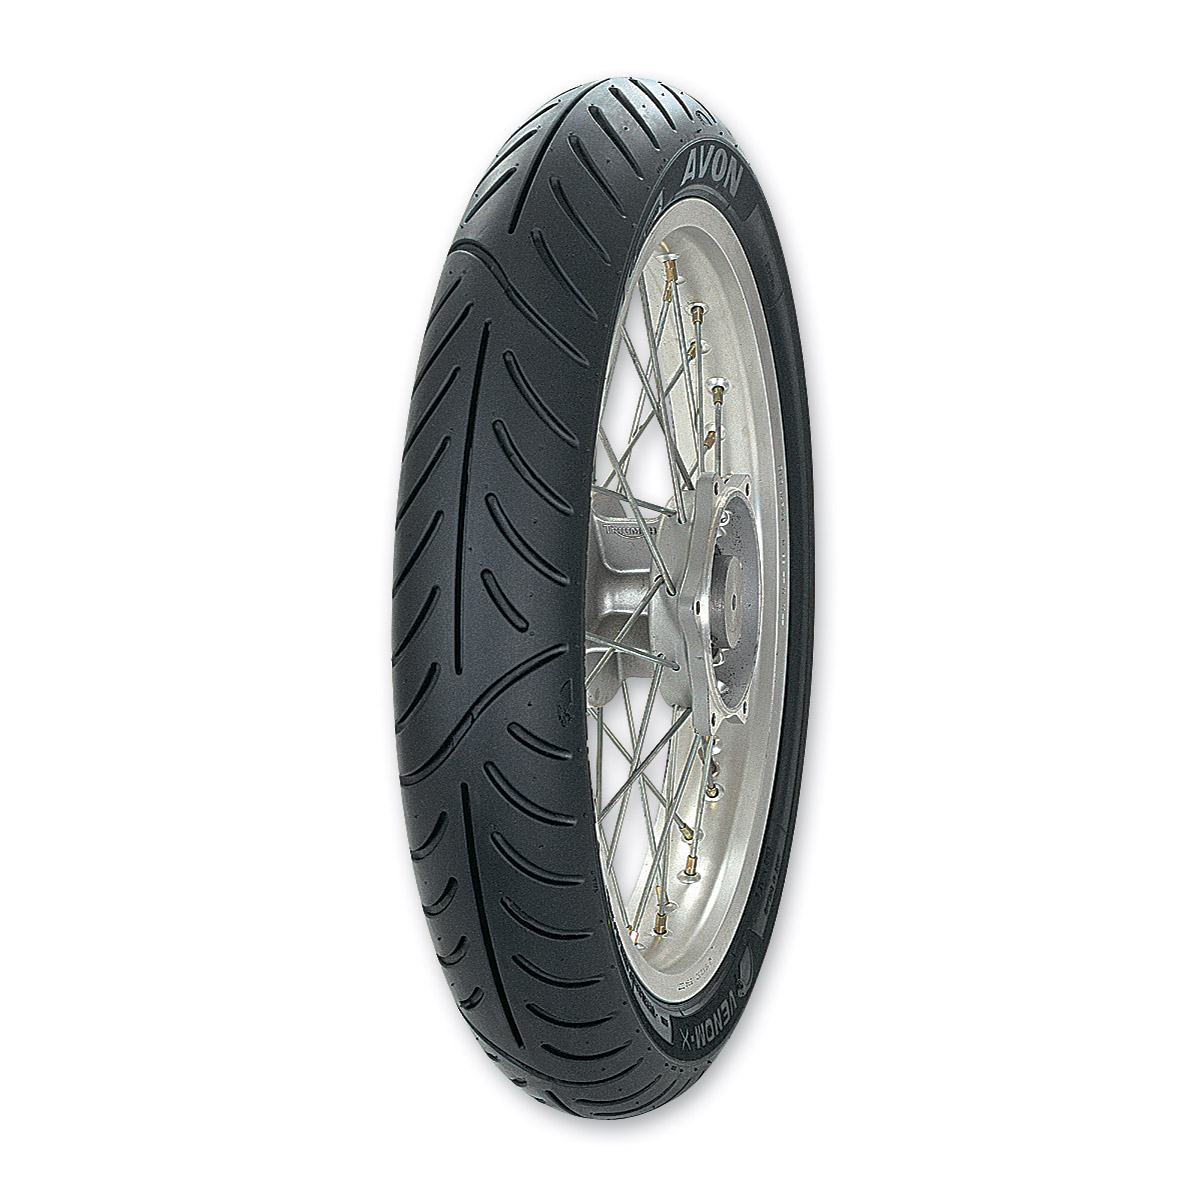 Avon AM41 Venom 120/70-21 Front Tire